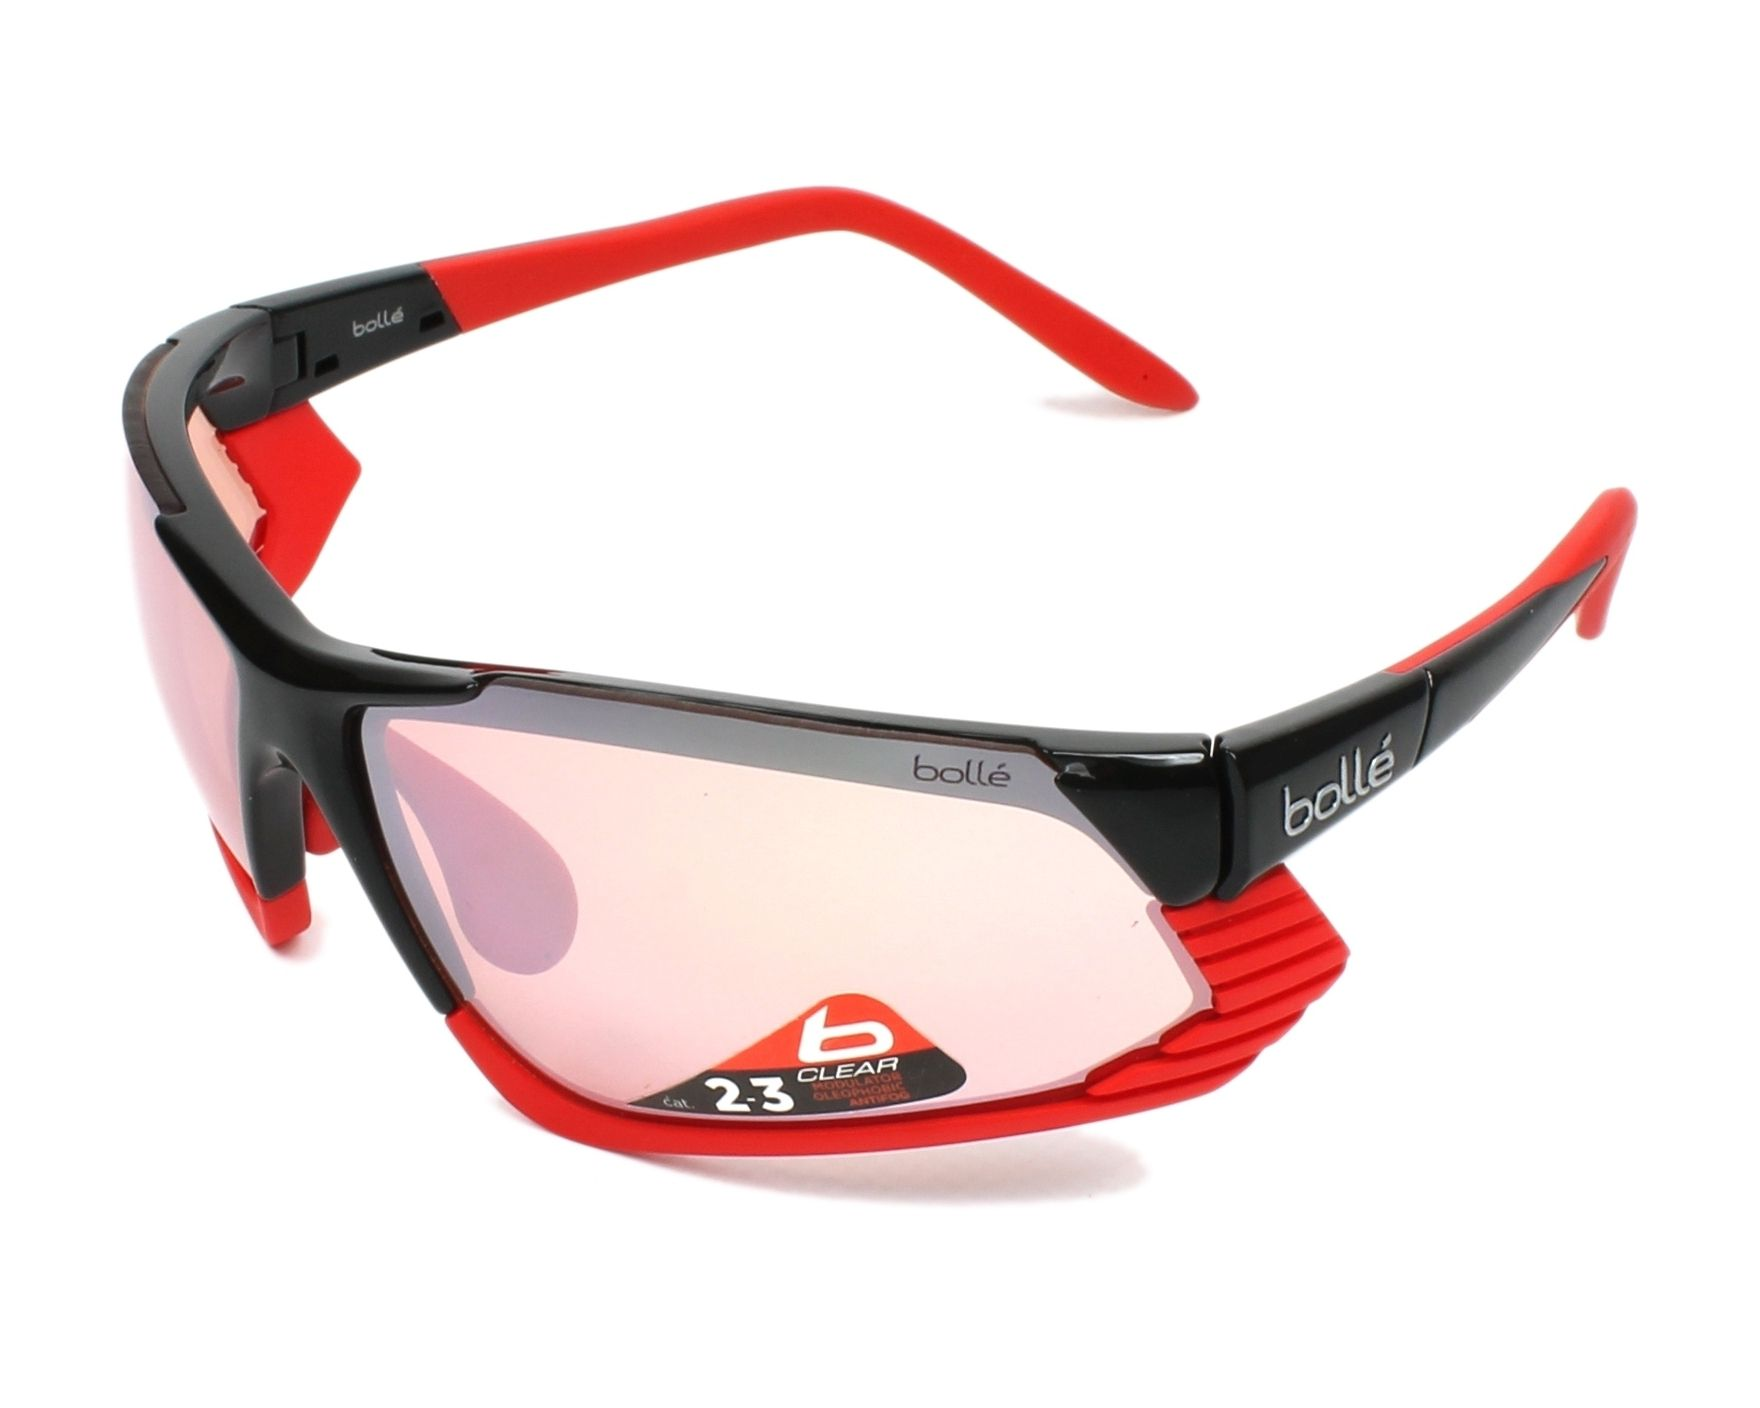 Bollé Cadence Shiny Black/Red 12088 IfeZ8